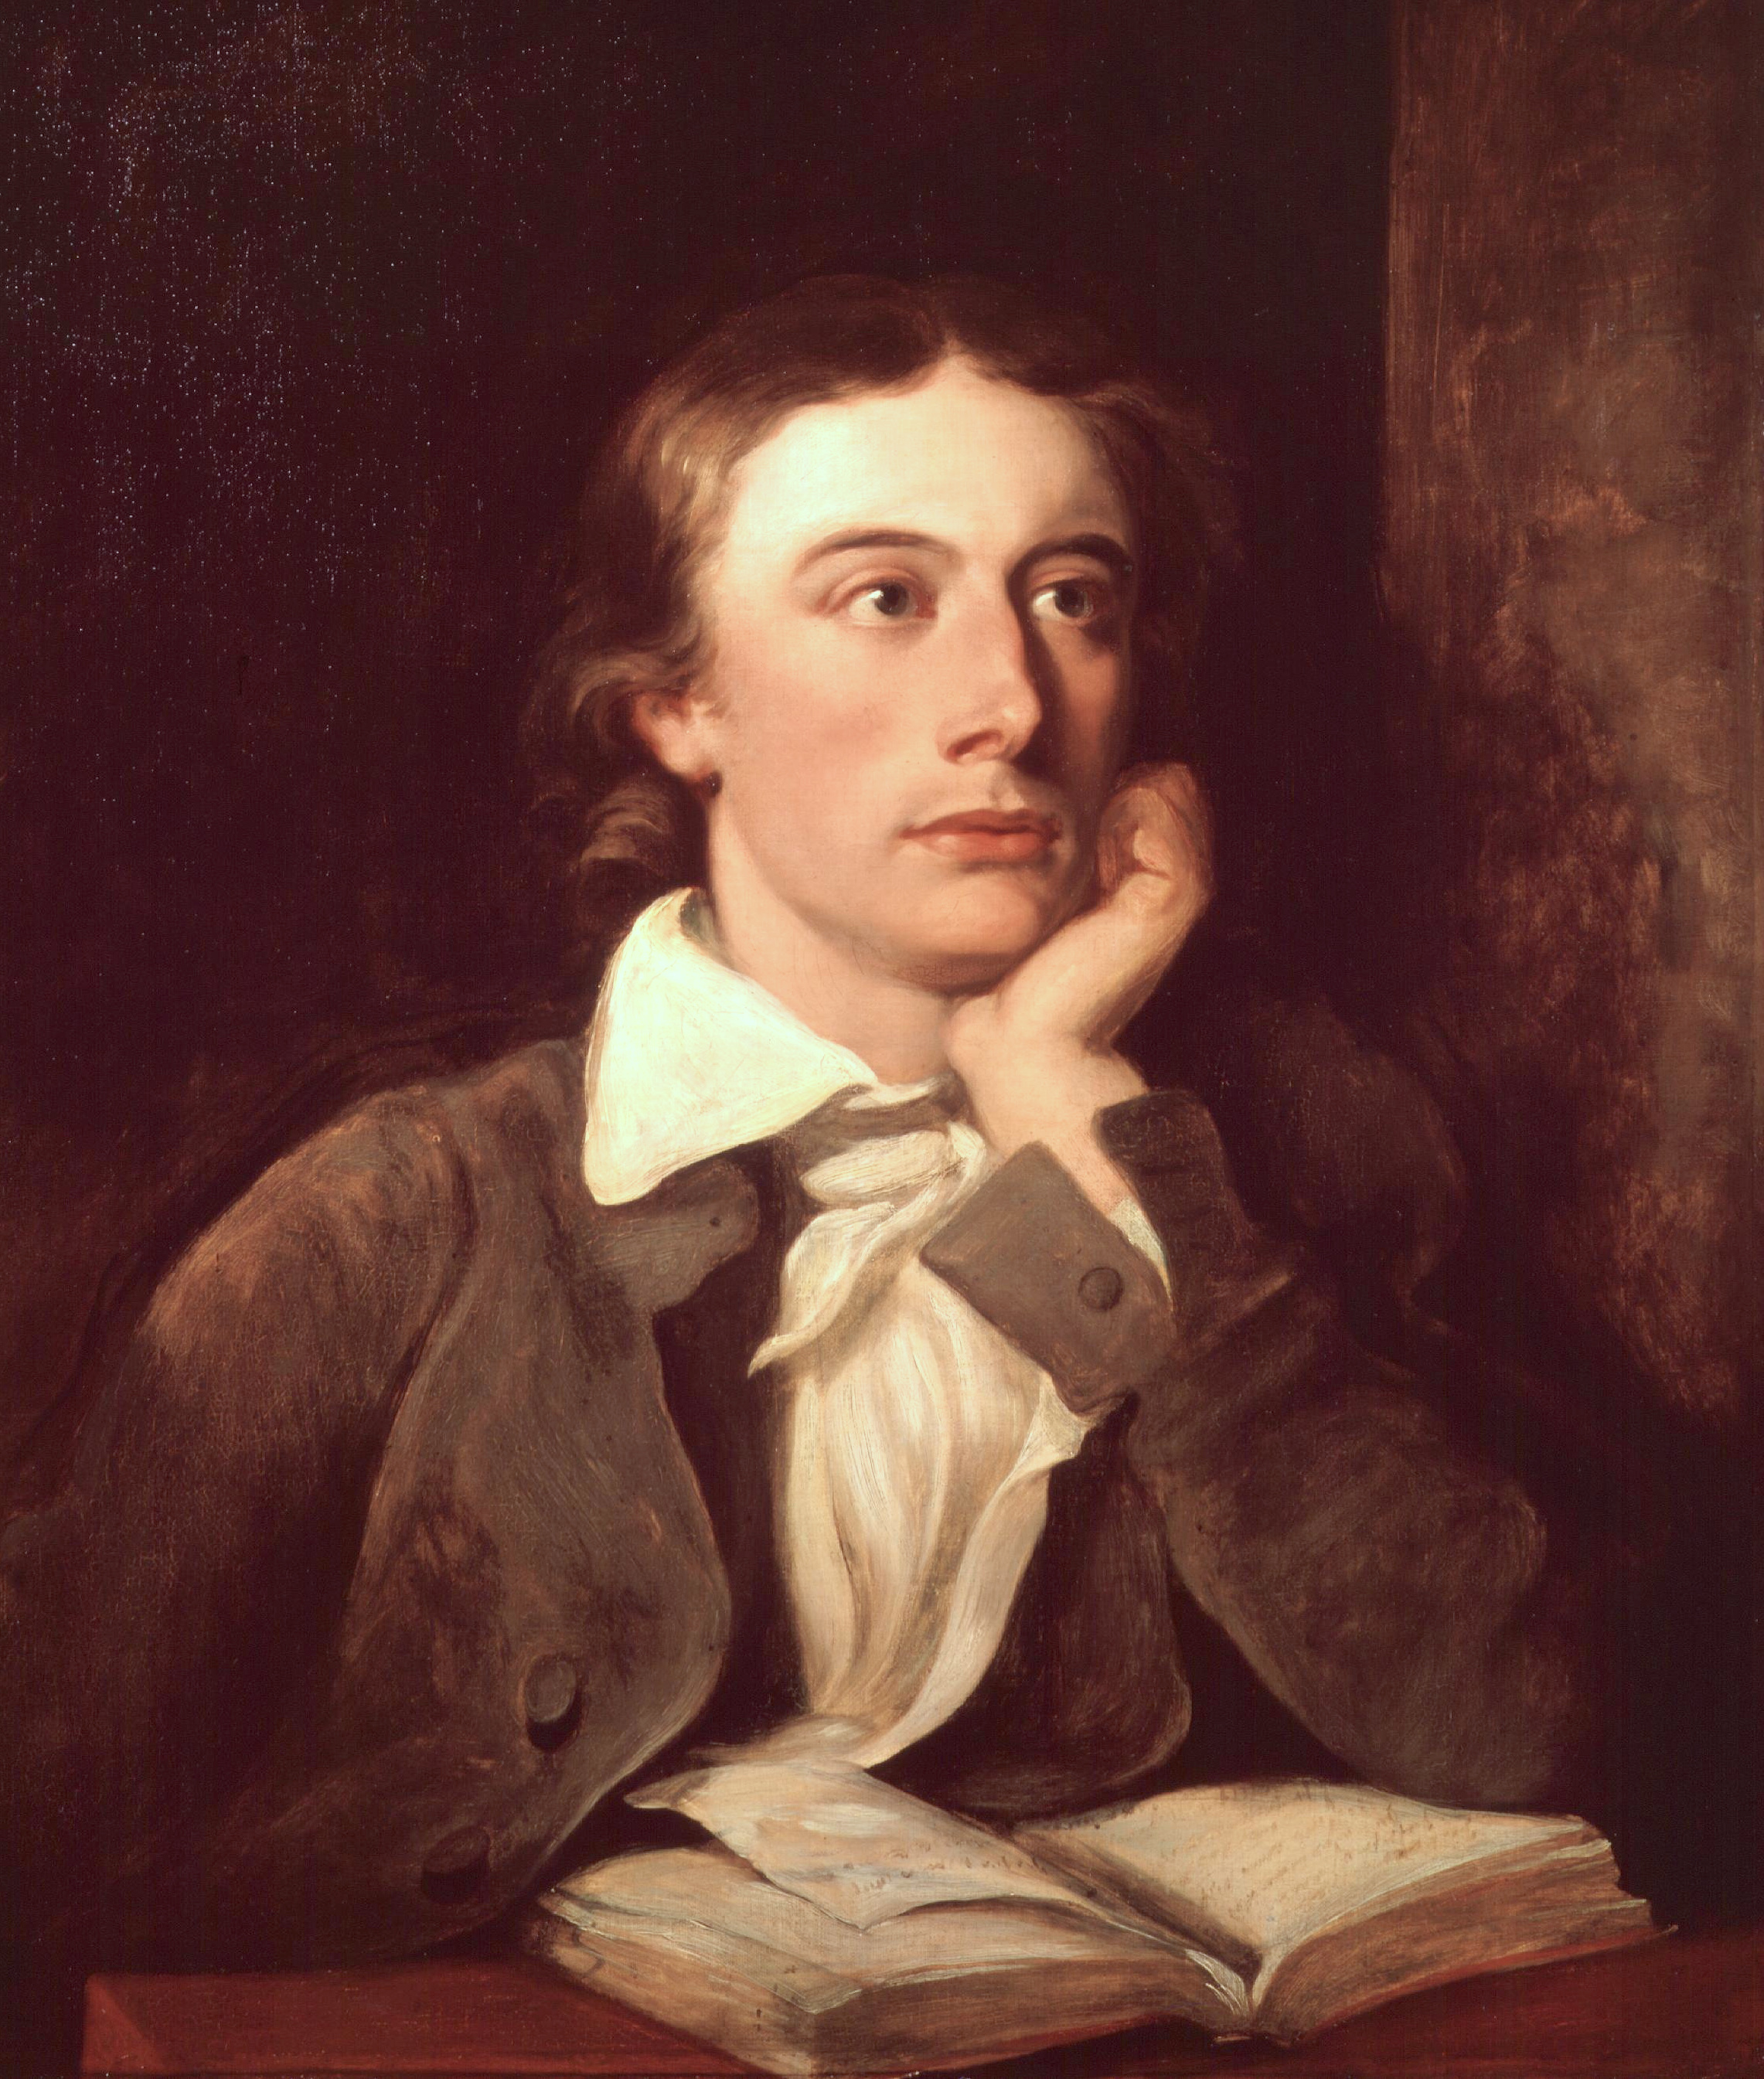 john keats essay john keats ode on a grecian urn by keats analysis  john keats john keats by william hilton jpg